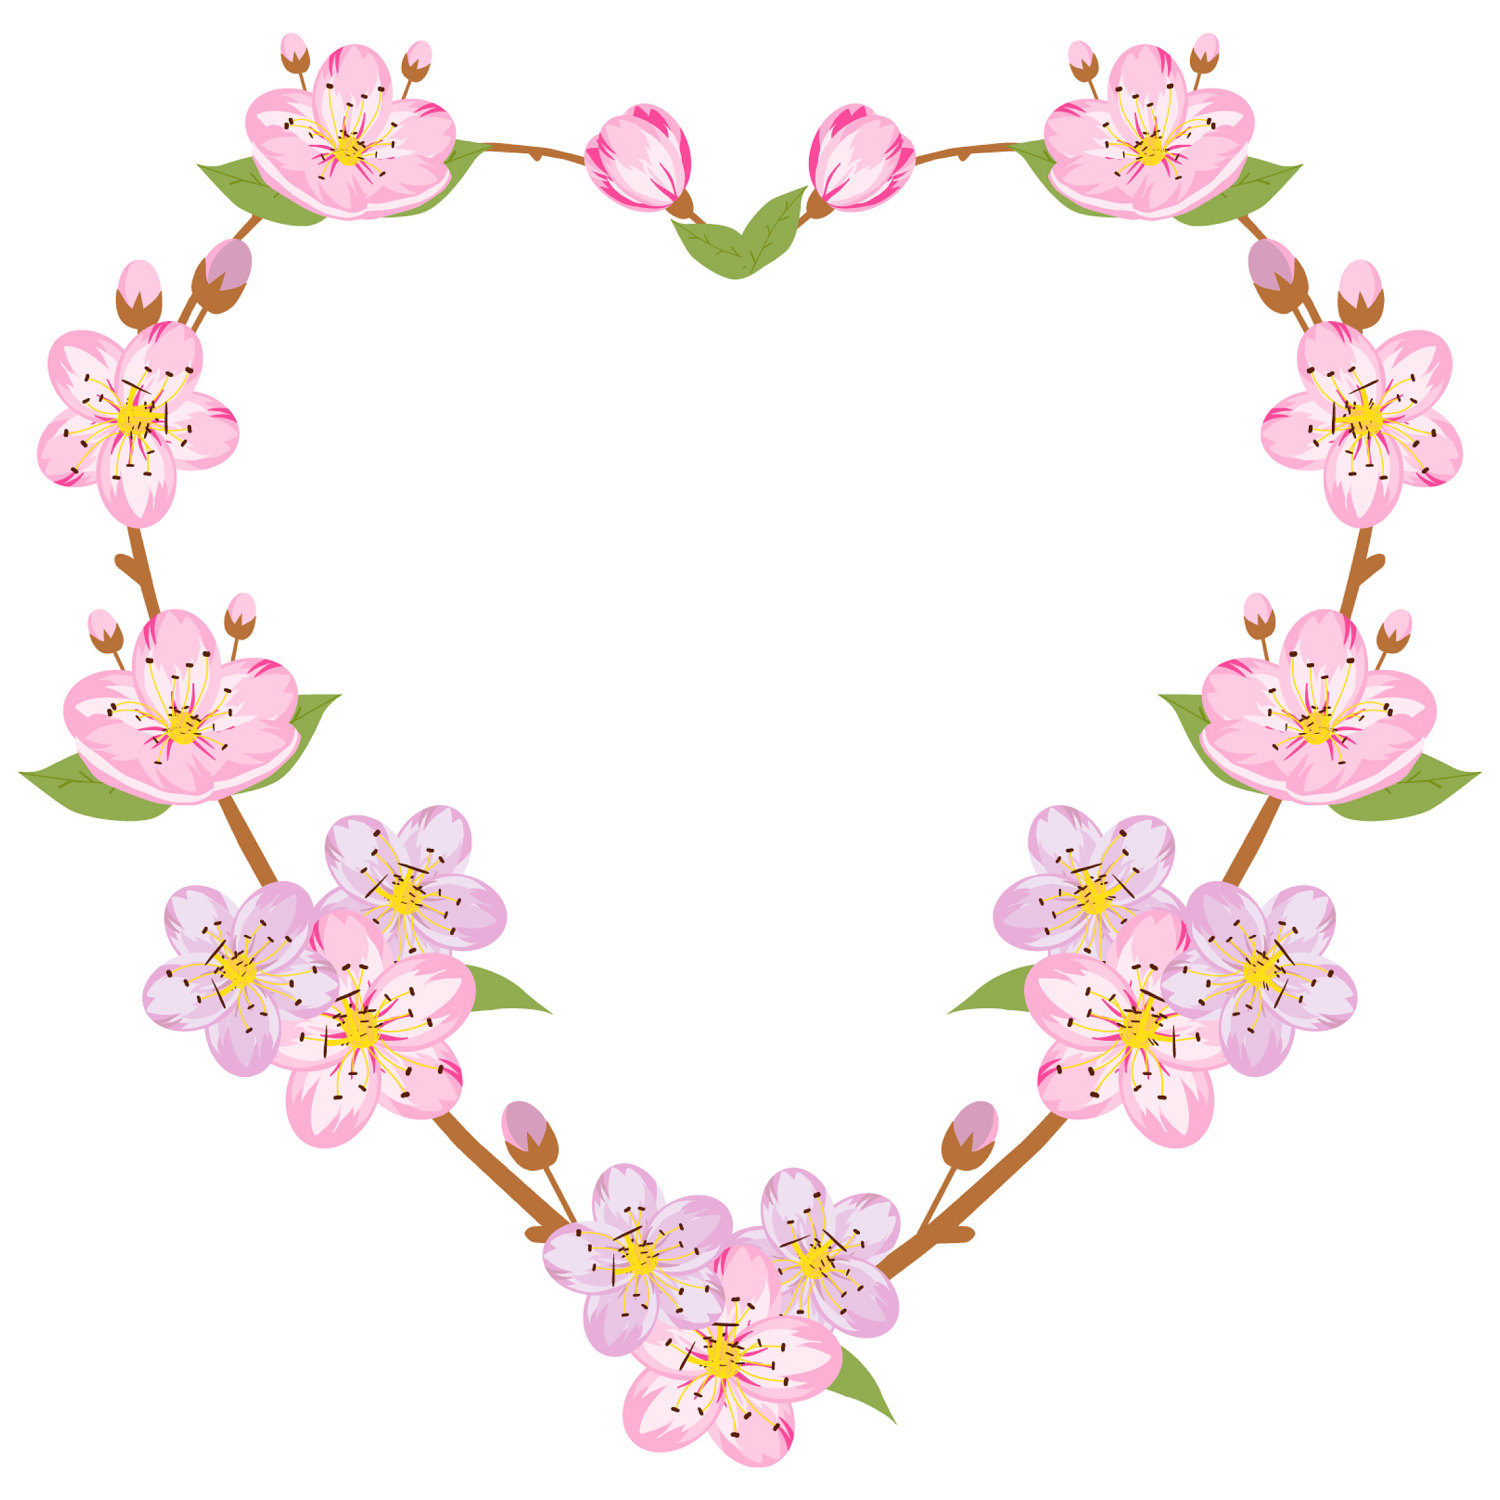 1500x1500 Spring Clipart, Sakura Clipart, Spring Wreath, Heart Wreath